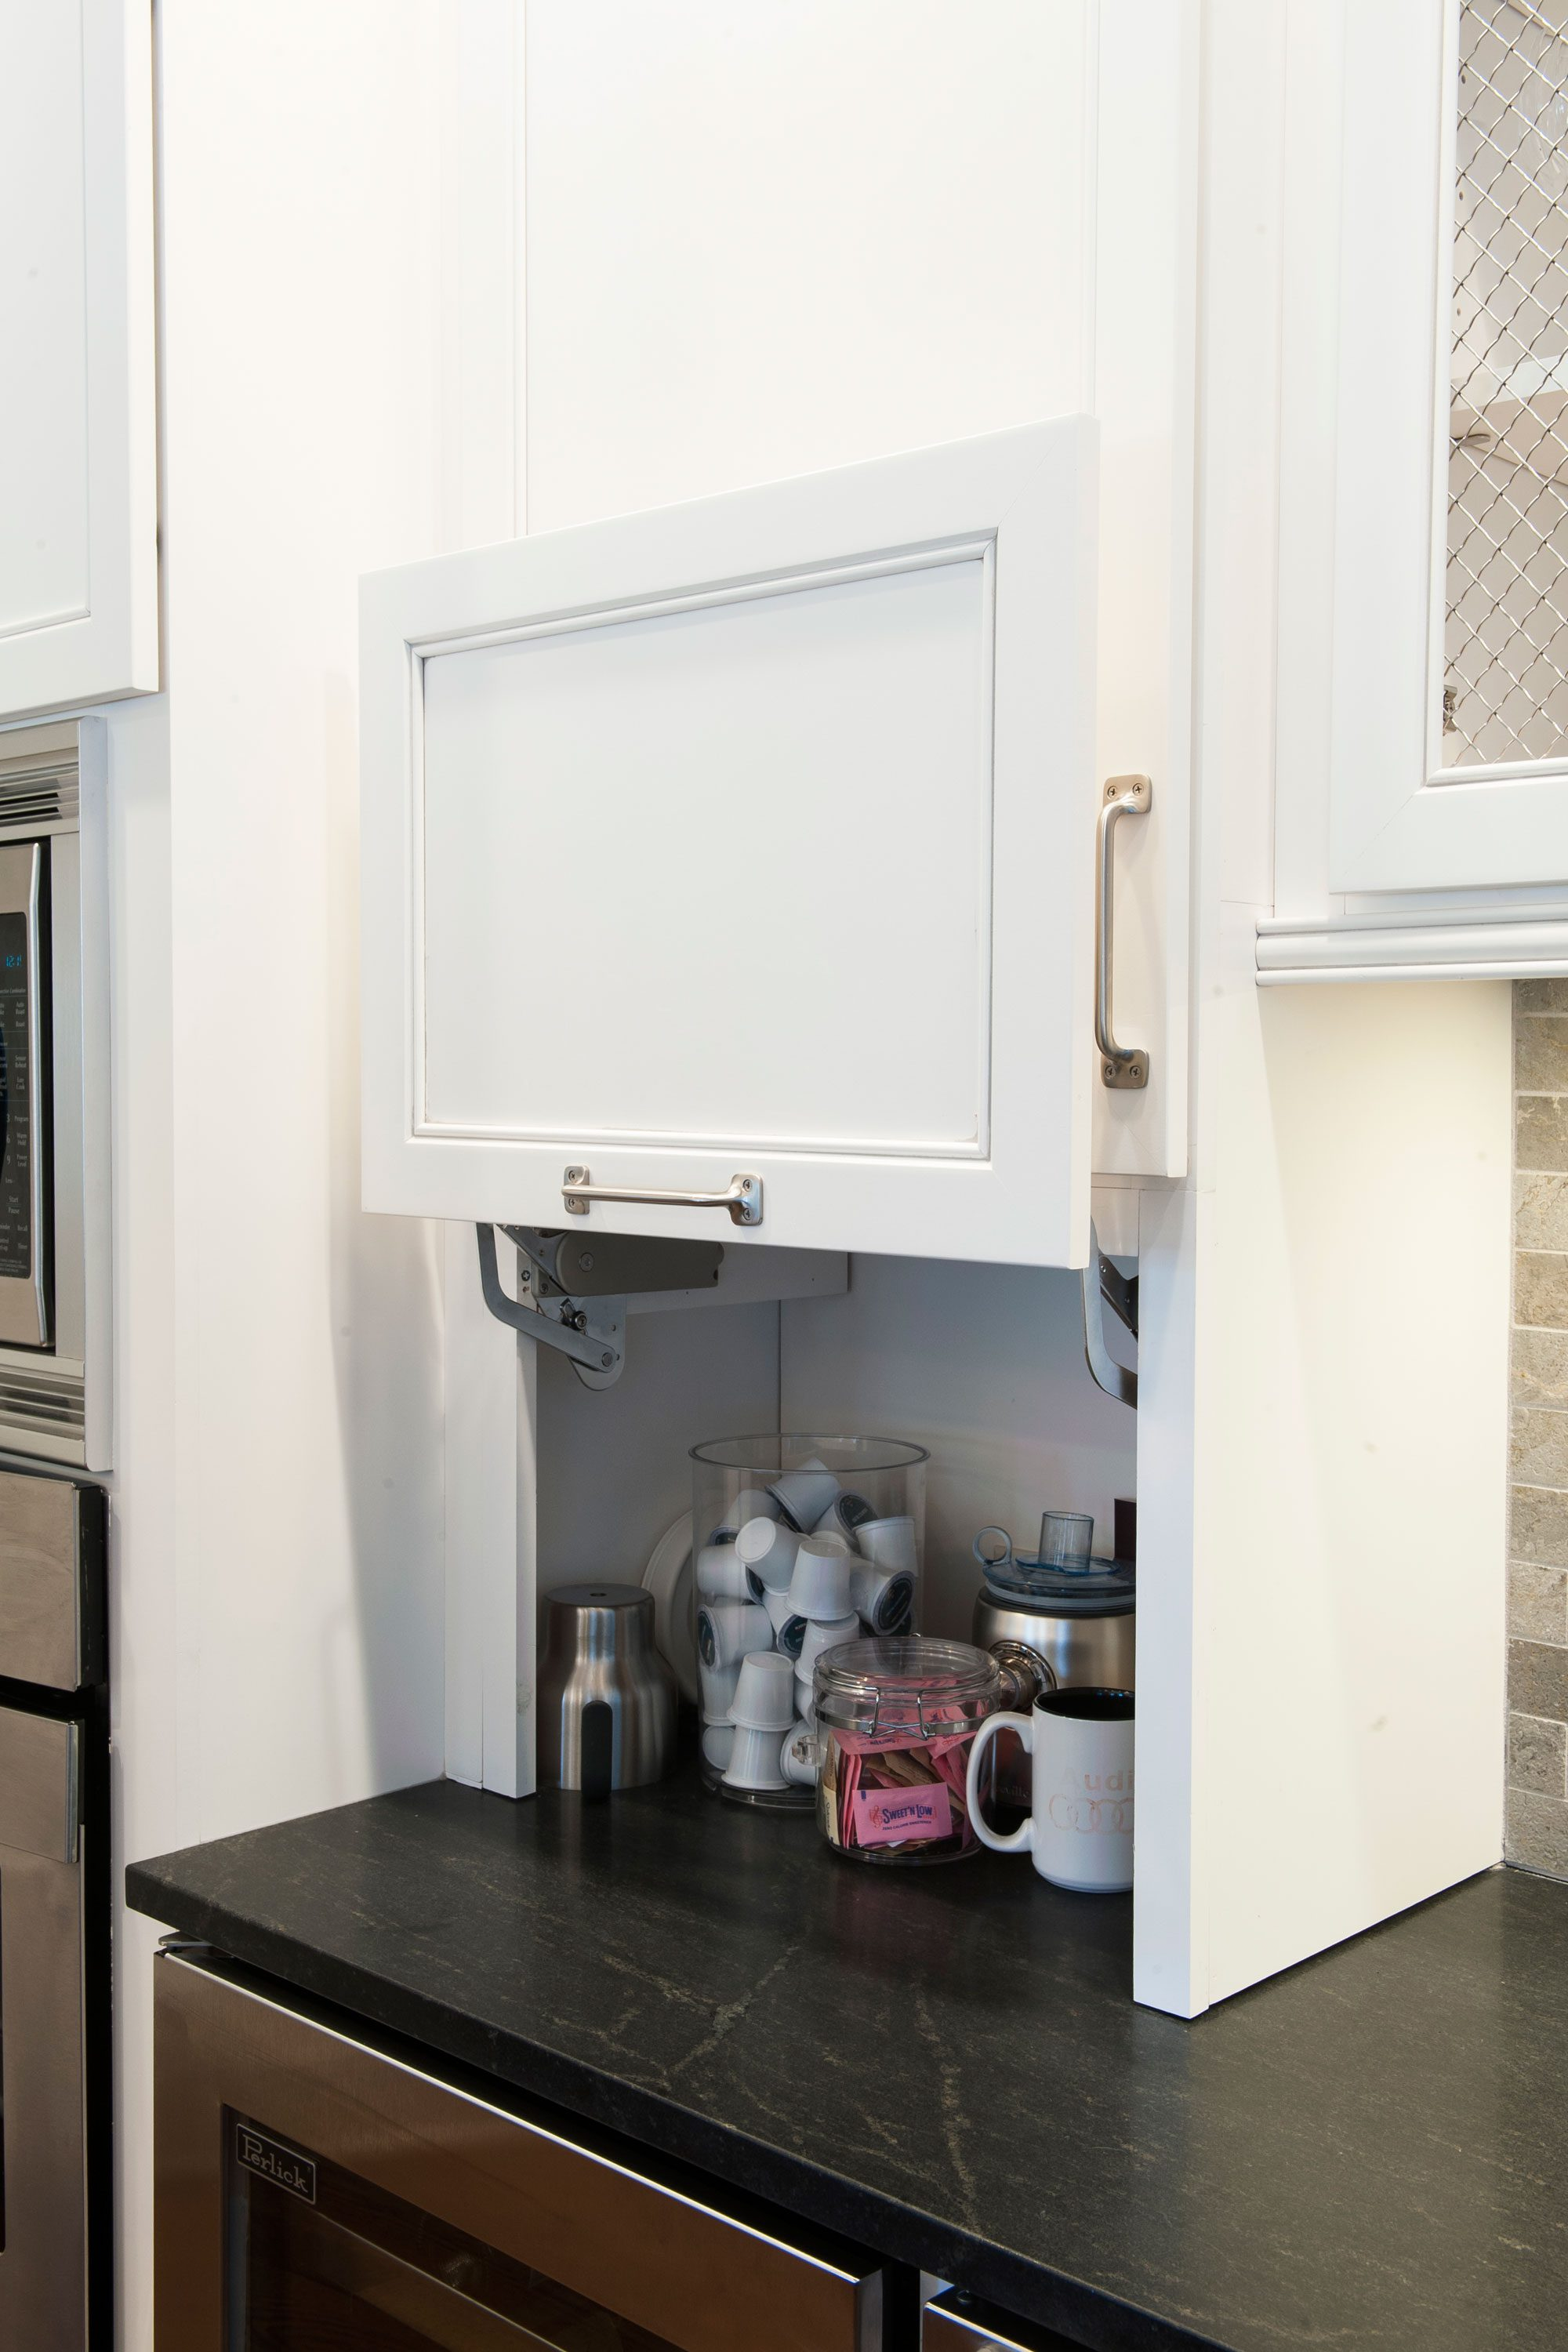 8 Cabinet Modifications that Make Life Easier | Case Indy